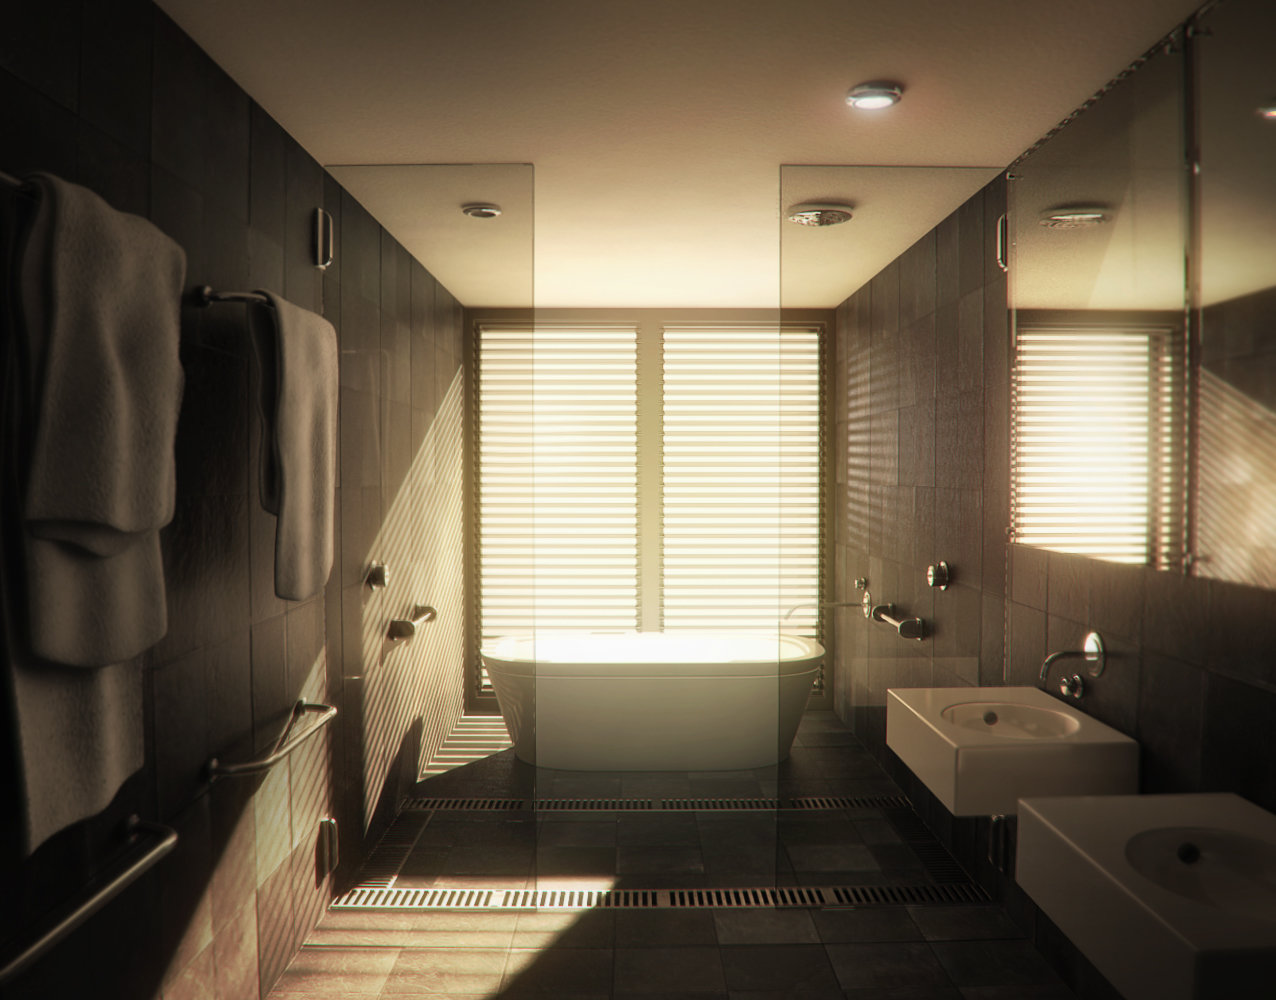 Mark ranson bathroom sunnyfinal01